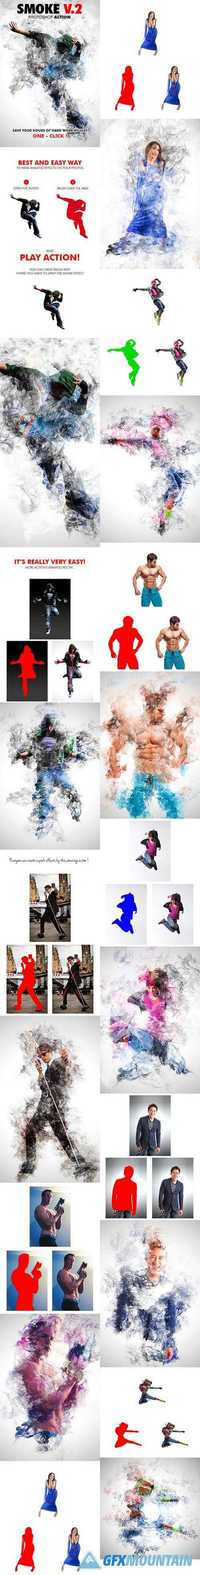 GraphicRiver - Smoke V.2 Photoshop Action - 18065902